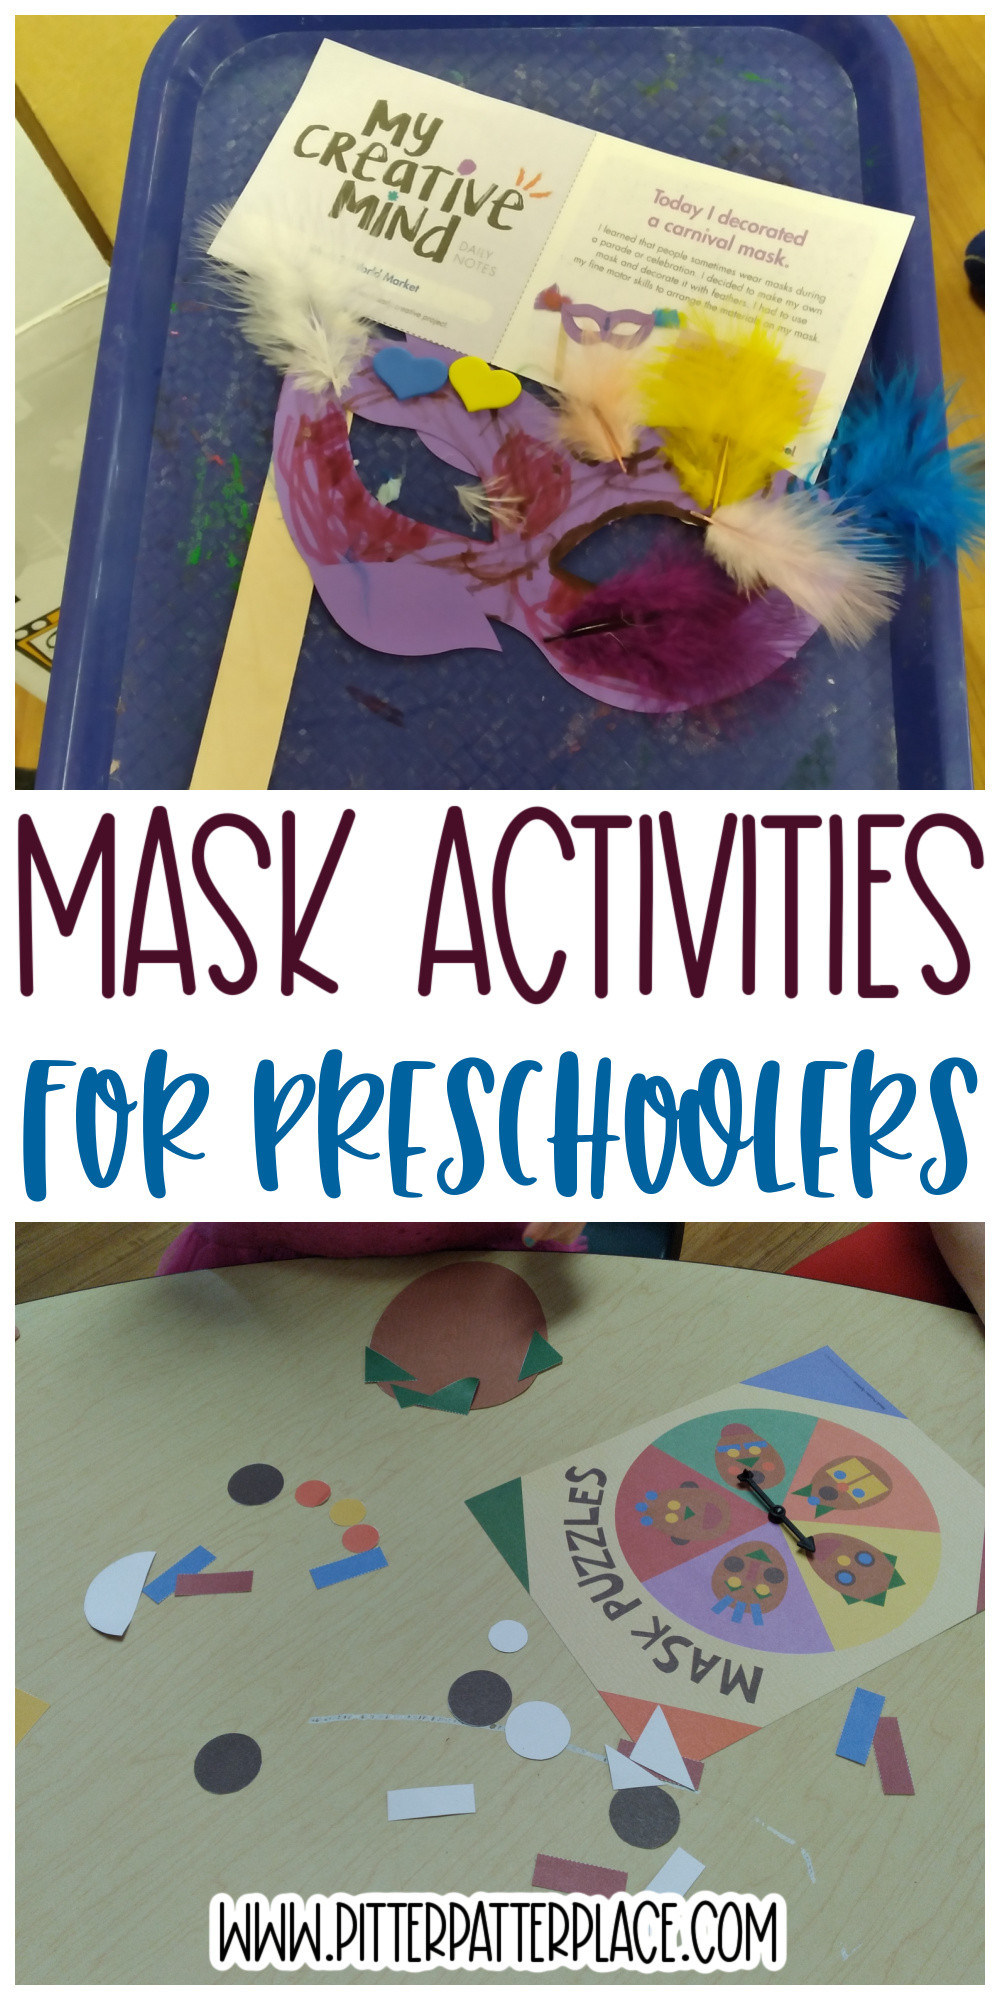 collage of mask activity photos with text: Mask Activities for Preschoolers